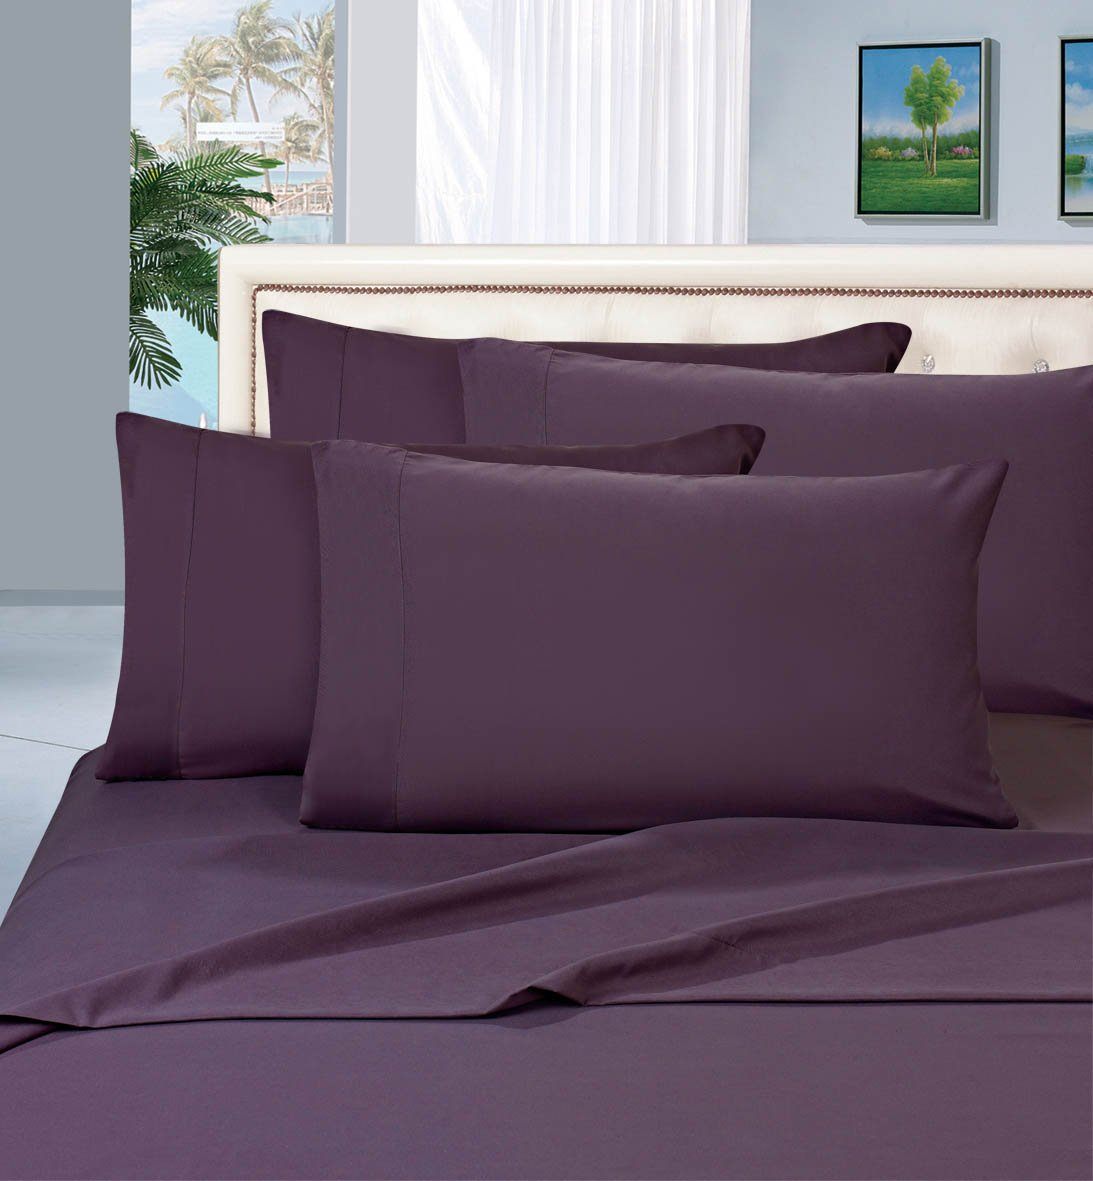 6 Piece Ultra Soft Luxurious Bed Sheet Set, Queen, Eggplant-Purple